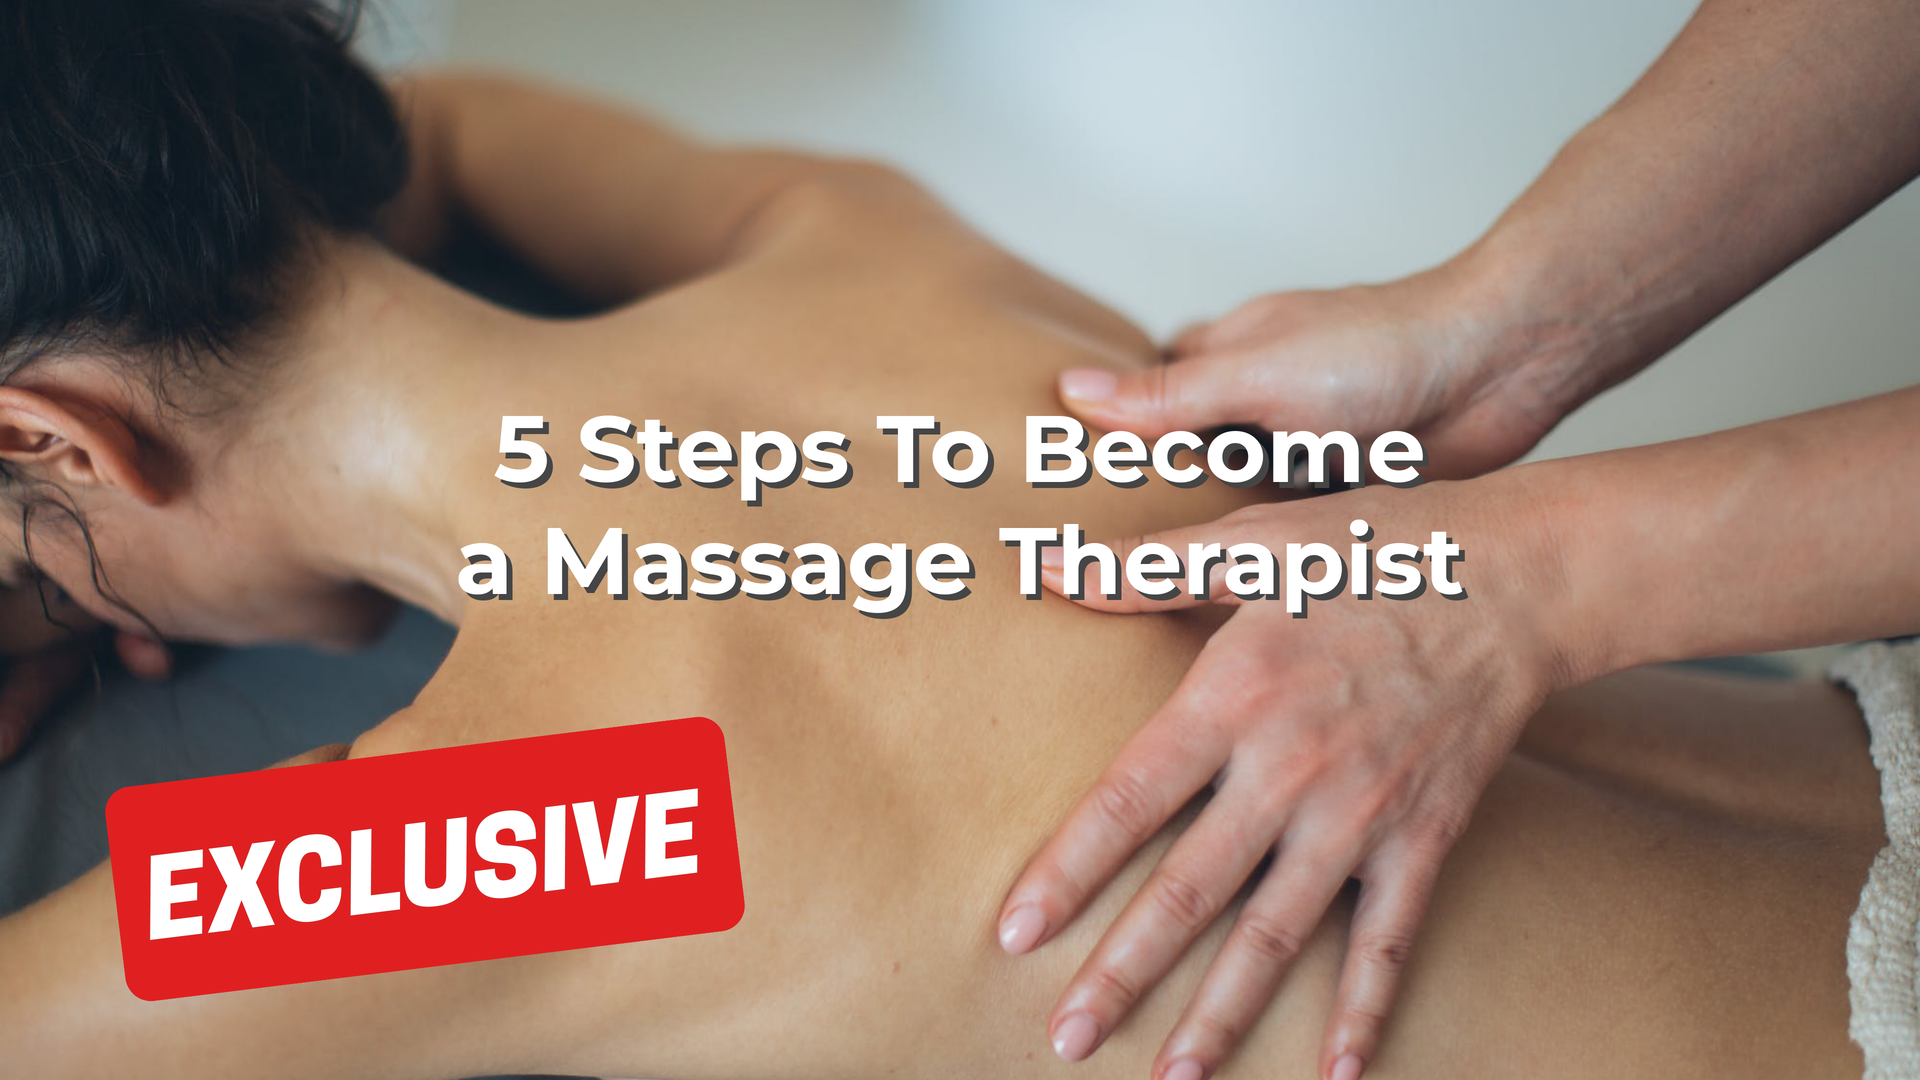 5 Steps To Become a Massage Therapist